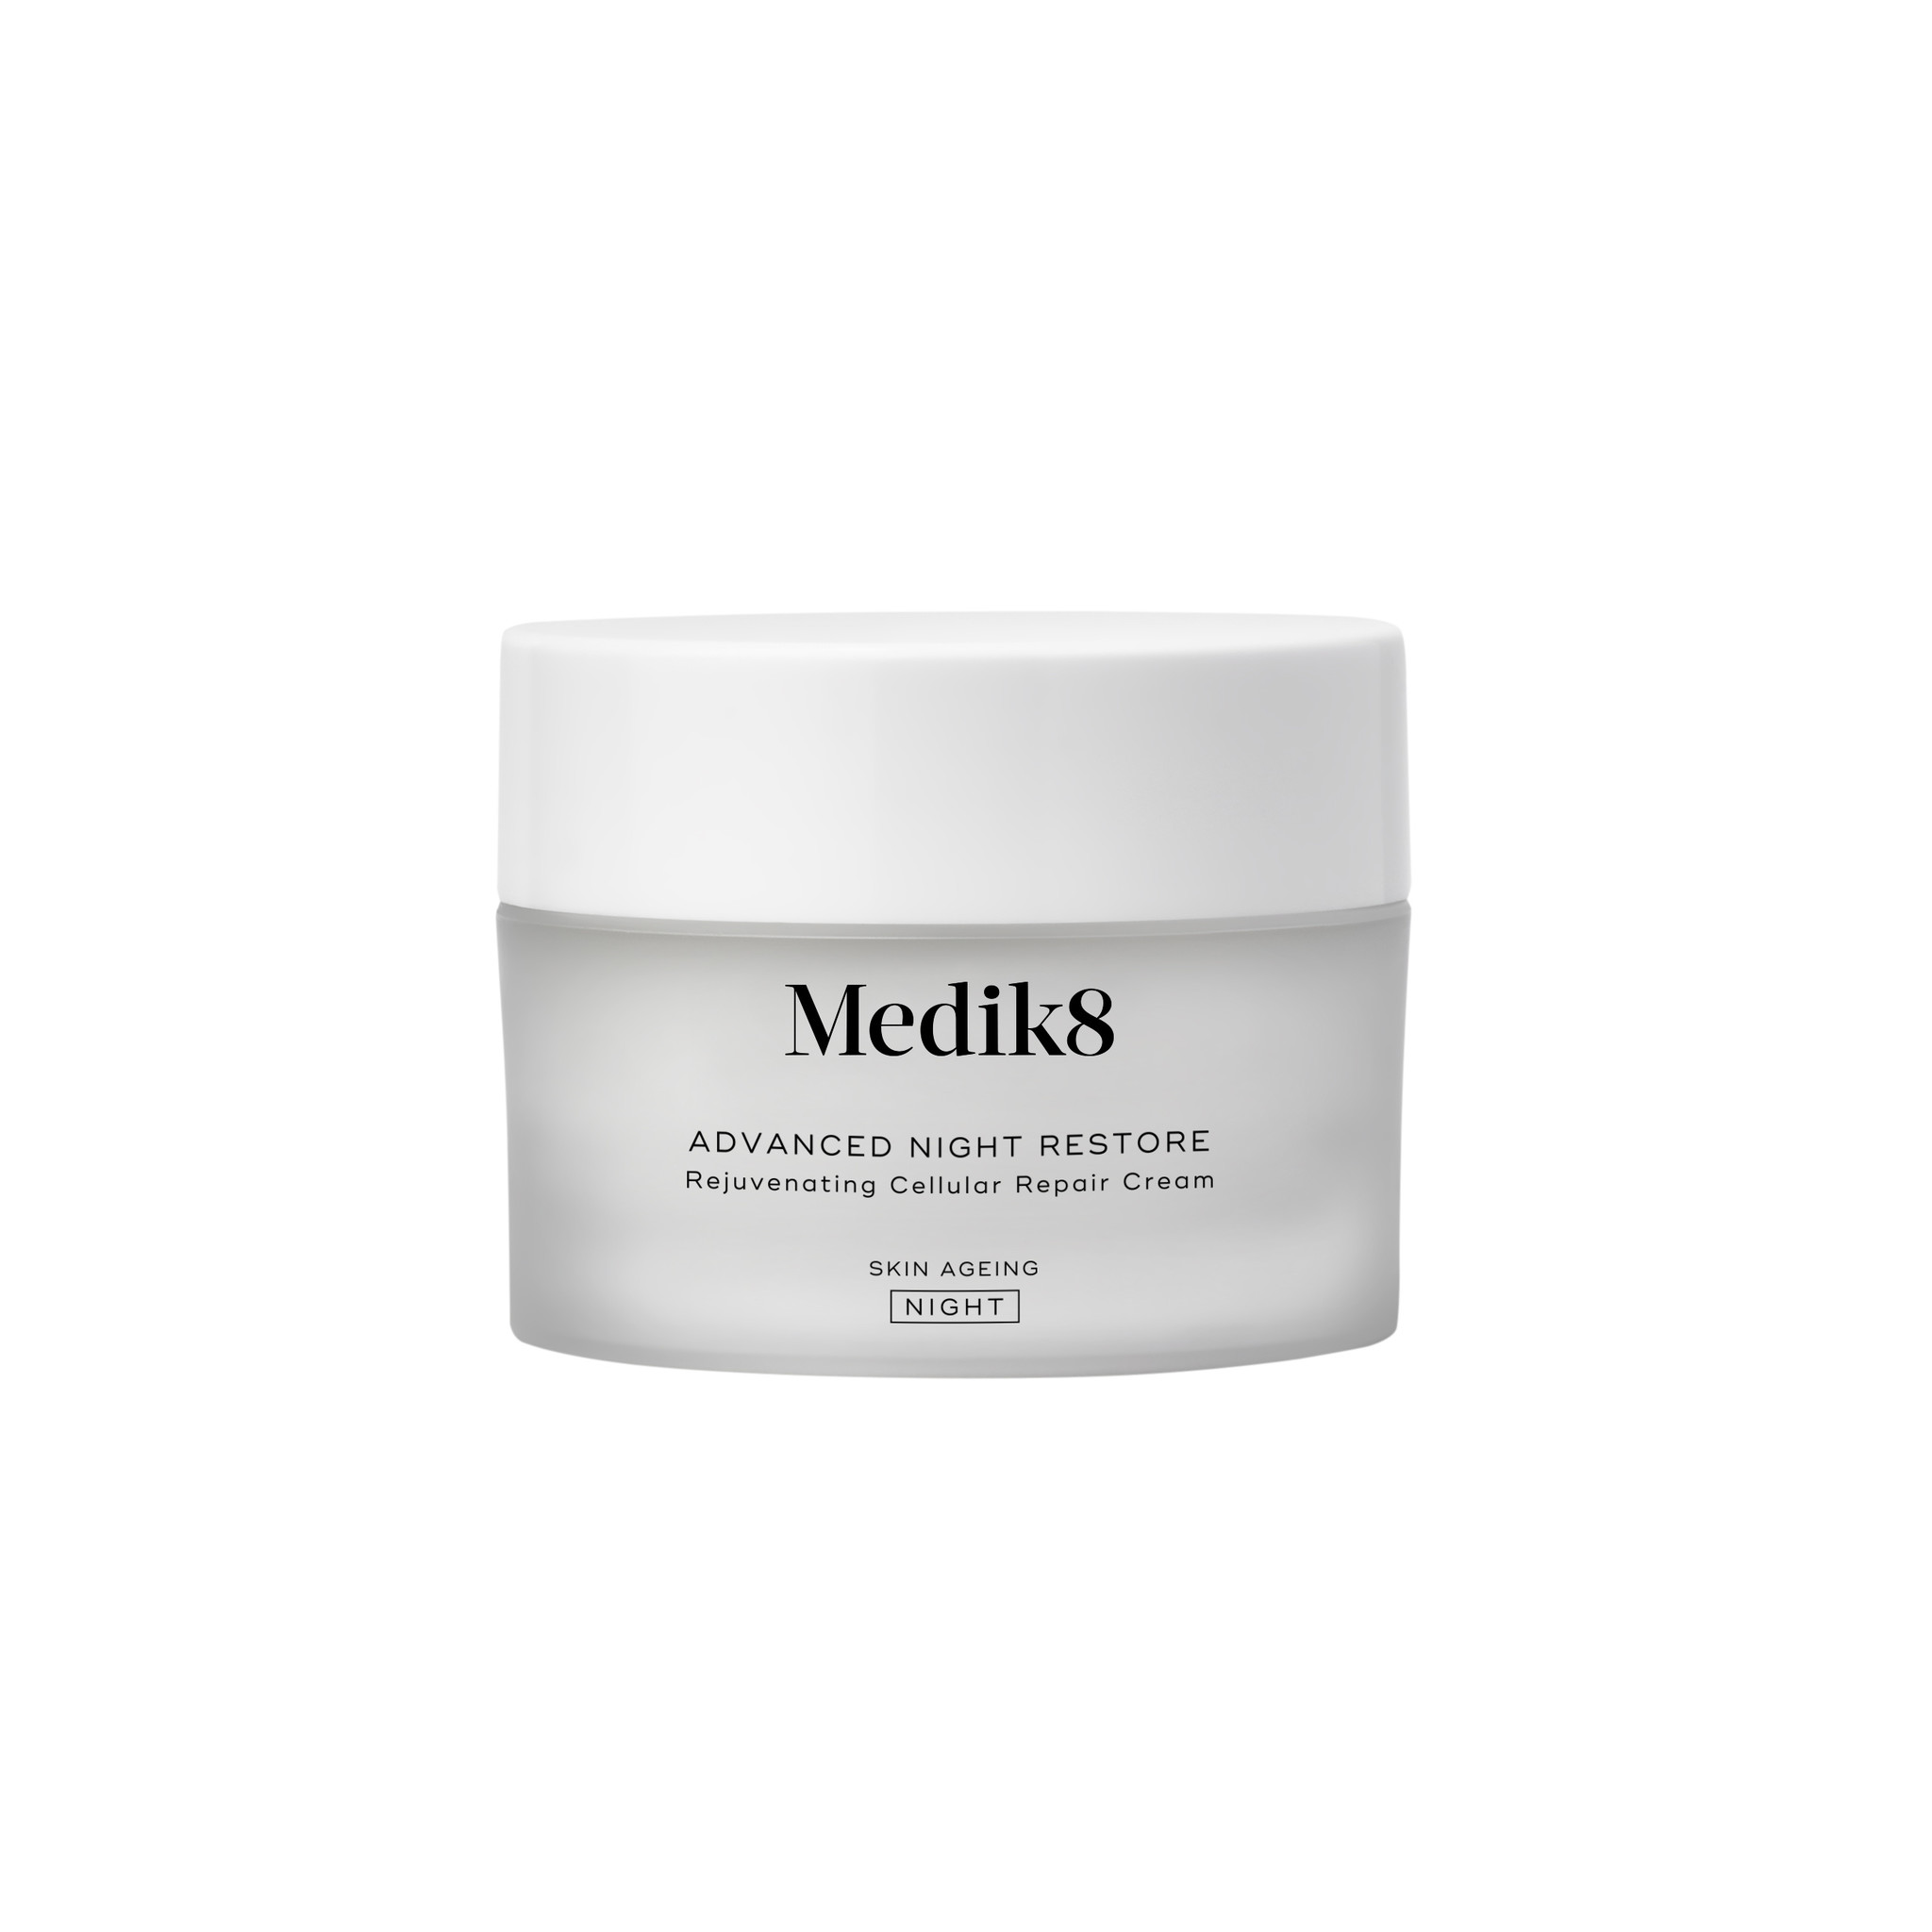 Medik8 Advanced Night Restore | Rejuvenating Cellular Repair Cream